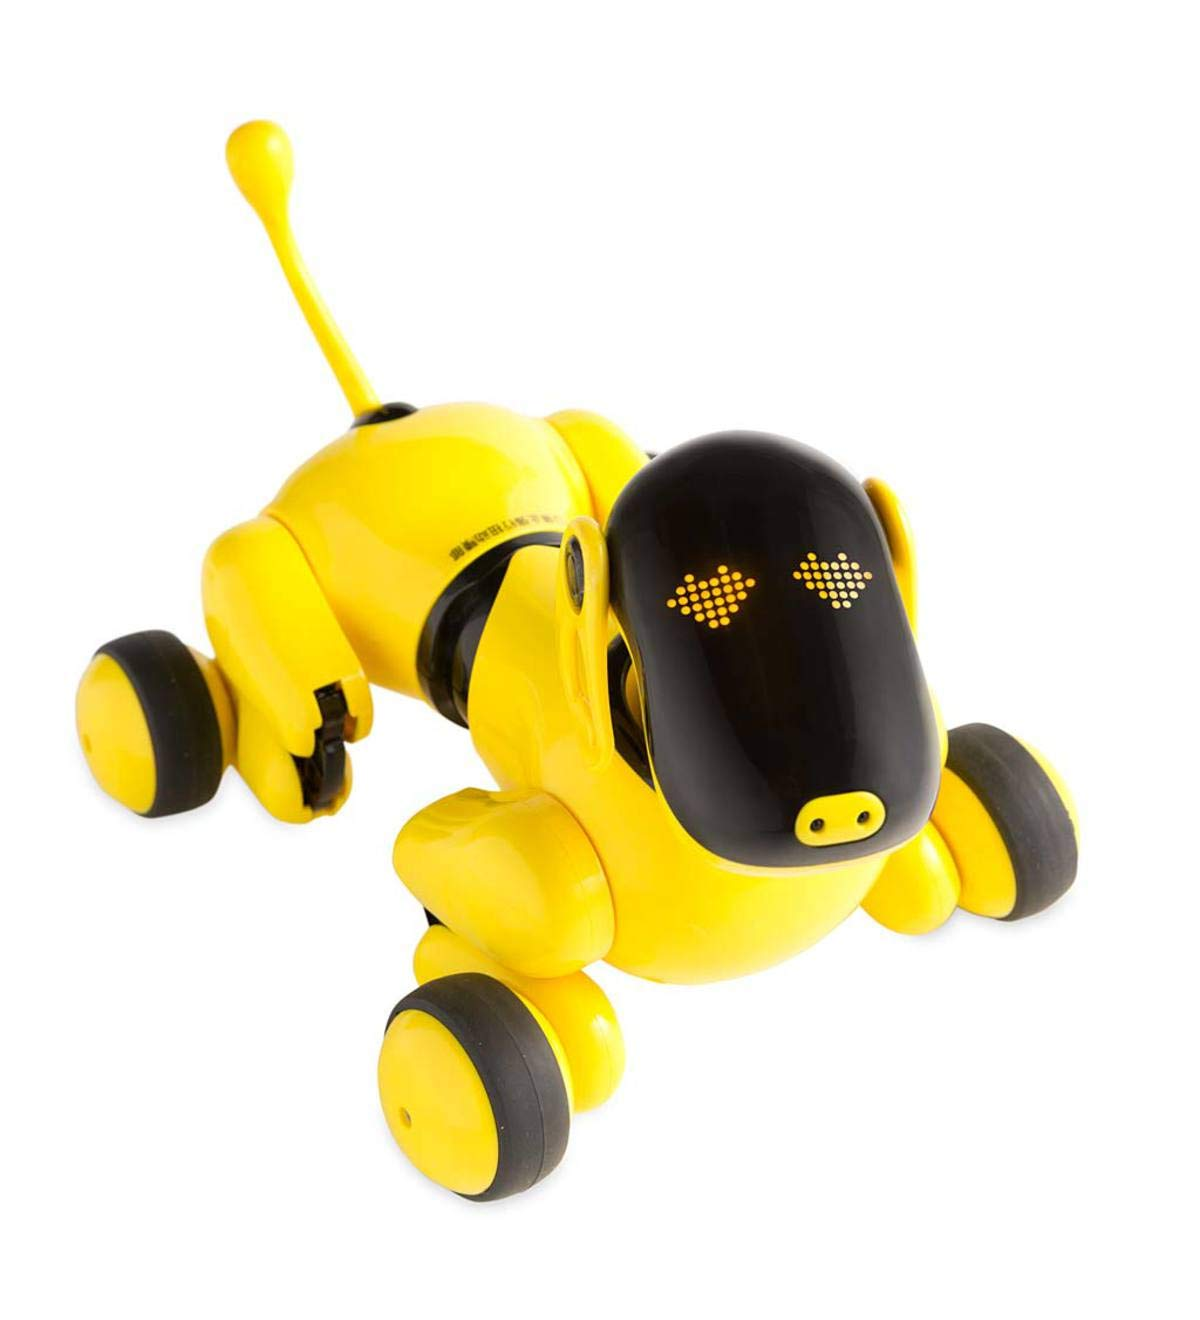 HearthSong Gizmo The Voice Controlled Robotic Dog - Electronic Pet Toy for Kids - 13 L x 5 W x 7'' H, Yellow by HearthSong (Image #5)